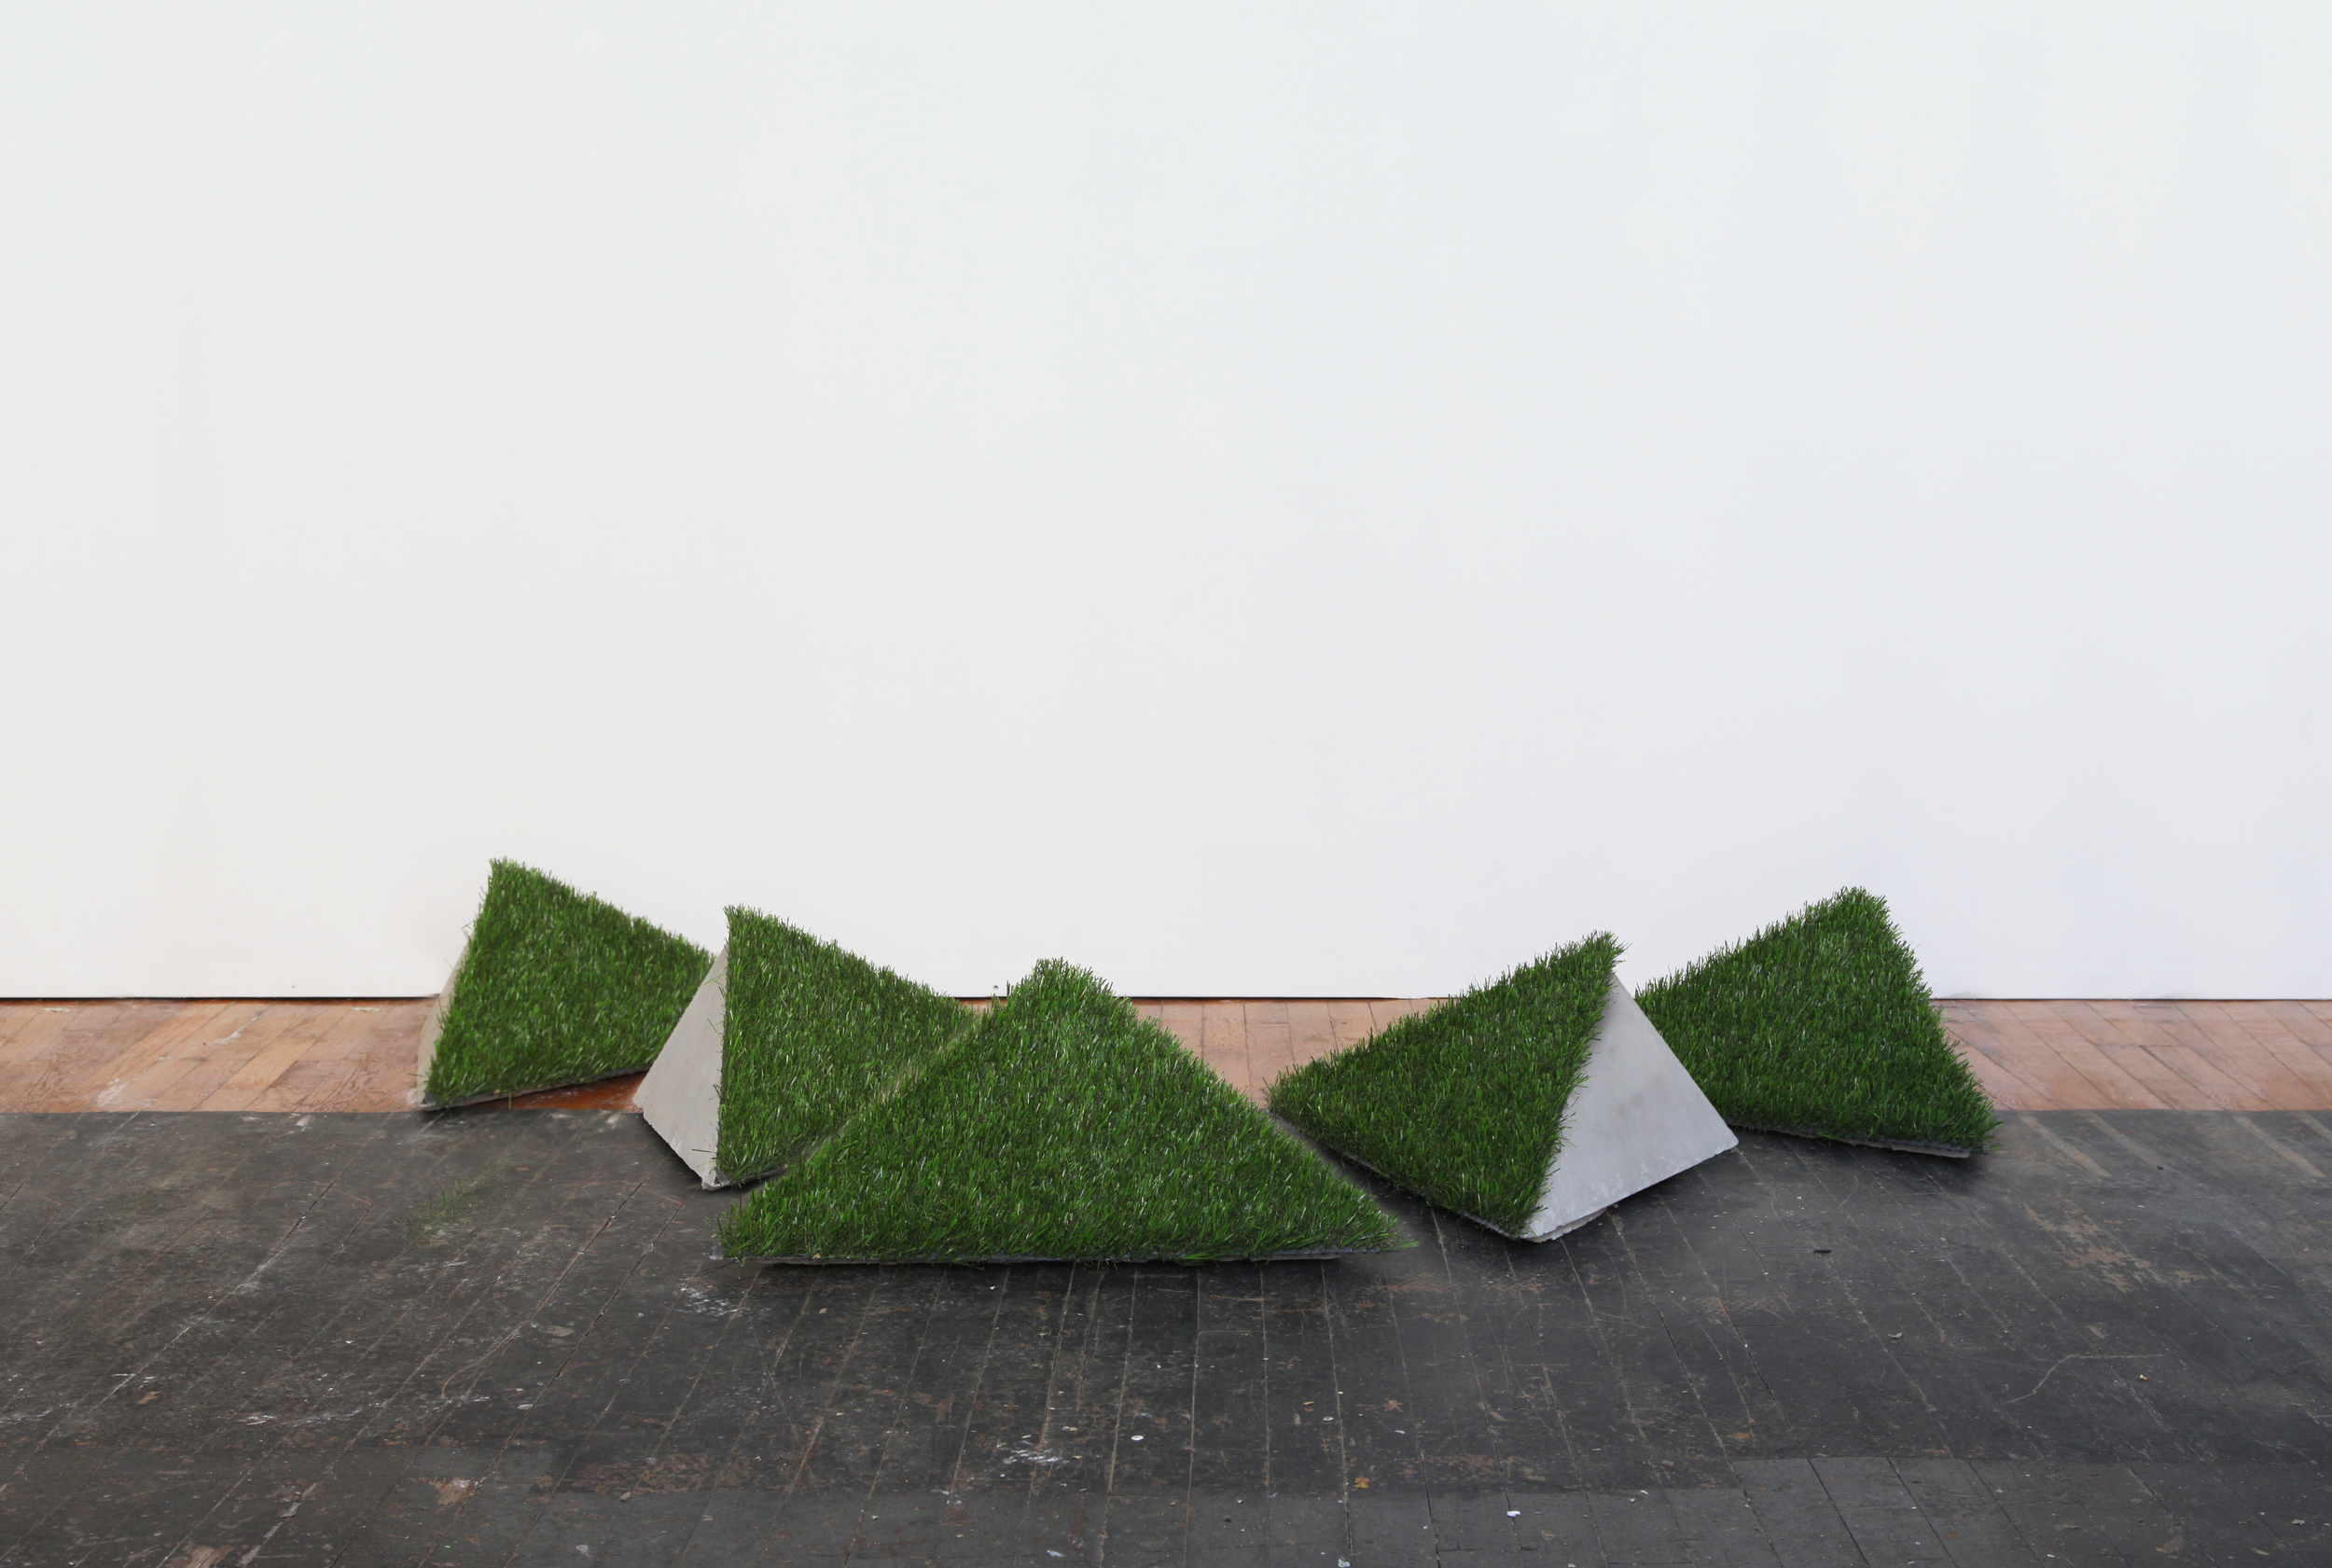 The Grass is Greener, 2012 astroturf, plaster, 63 x 38 x 17 in